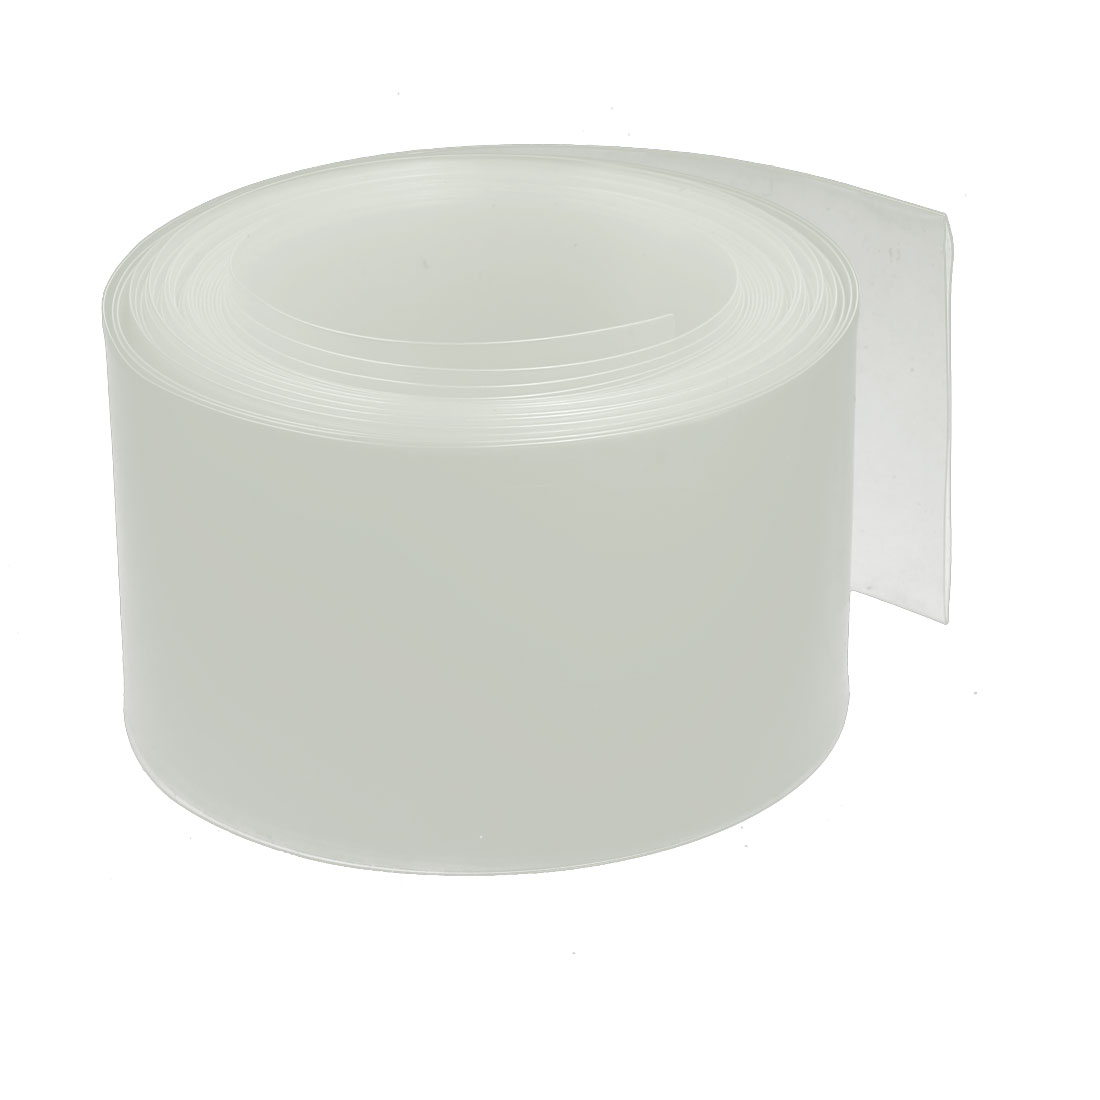 45mm Flat Width 5M Length PVC Heat Shrinkable Tube Clear for Capacitive Battery